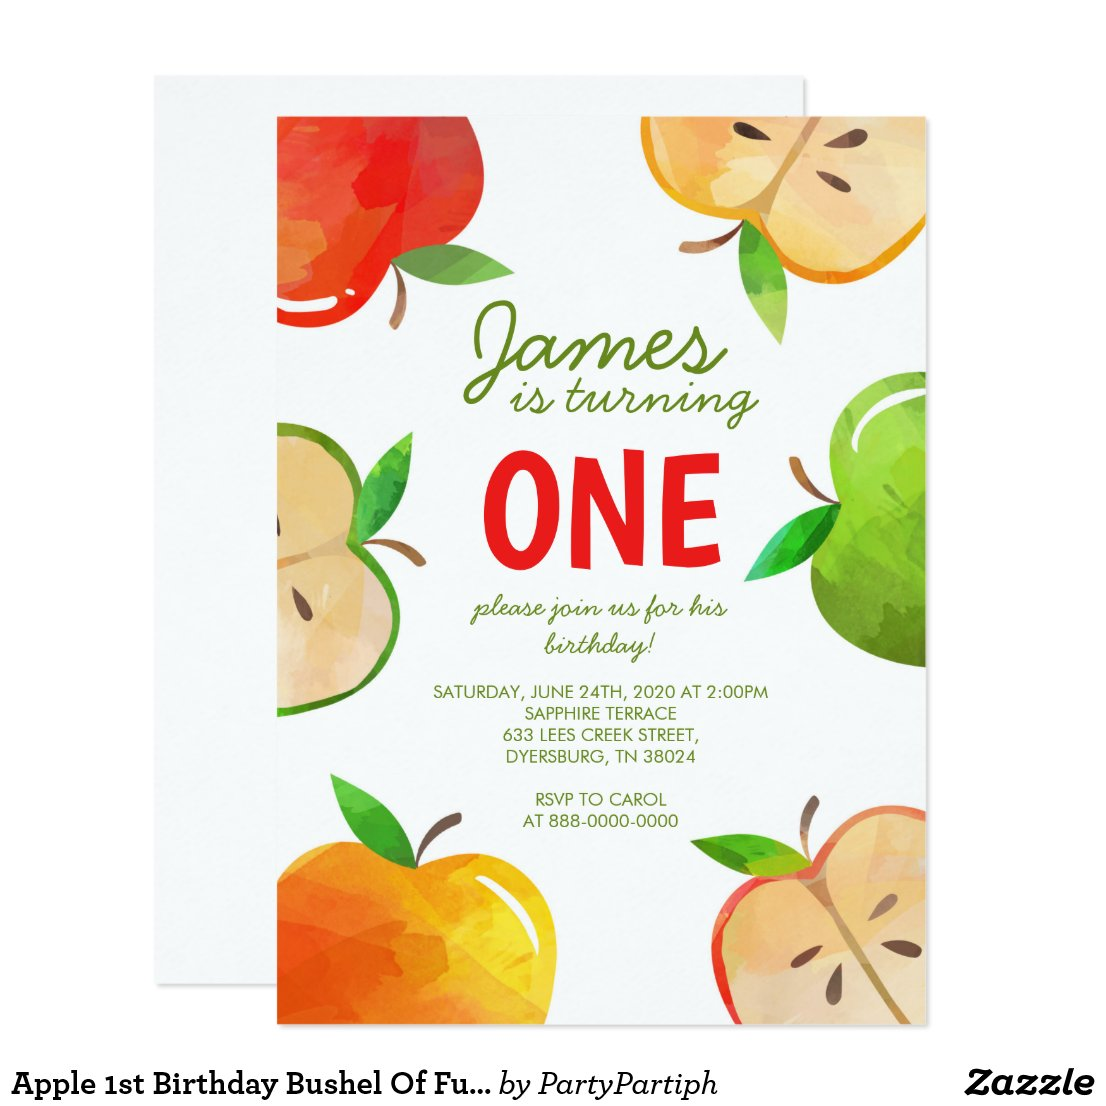 Apple 1st Birthday Bushel Of Fun Birthday Invitation